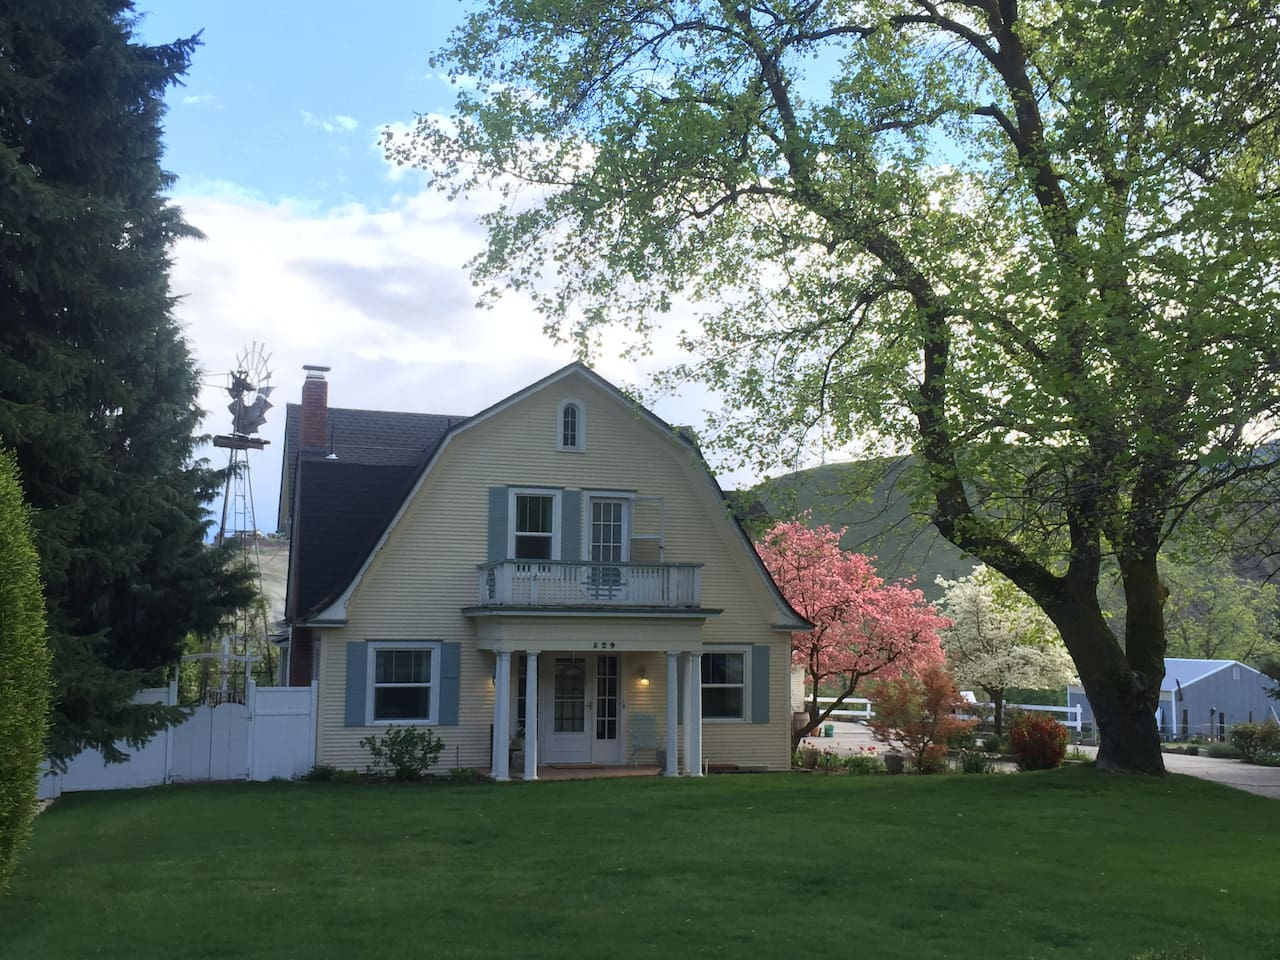 Our 1905 Farmhouse has a large yard with shade to relax and enjoy the weather. Just 5 minutes from town.